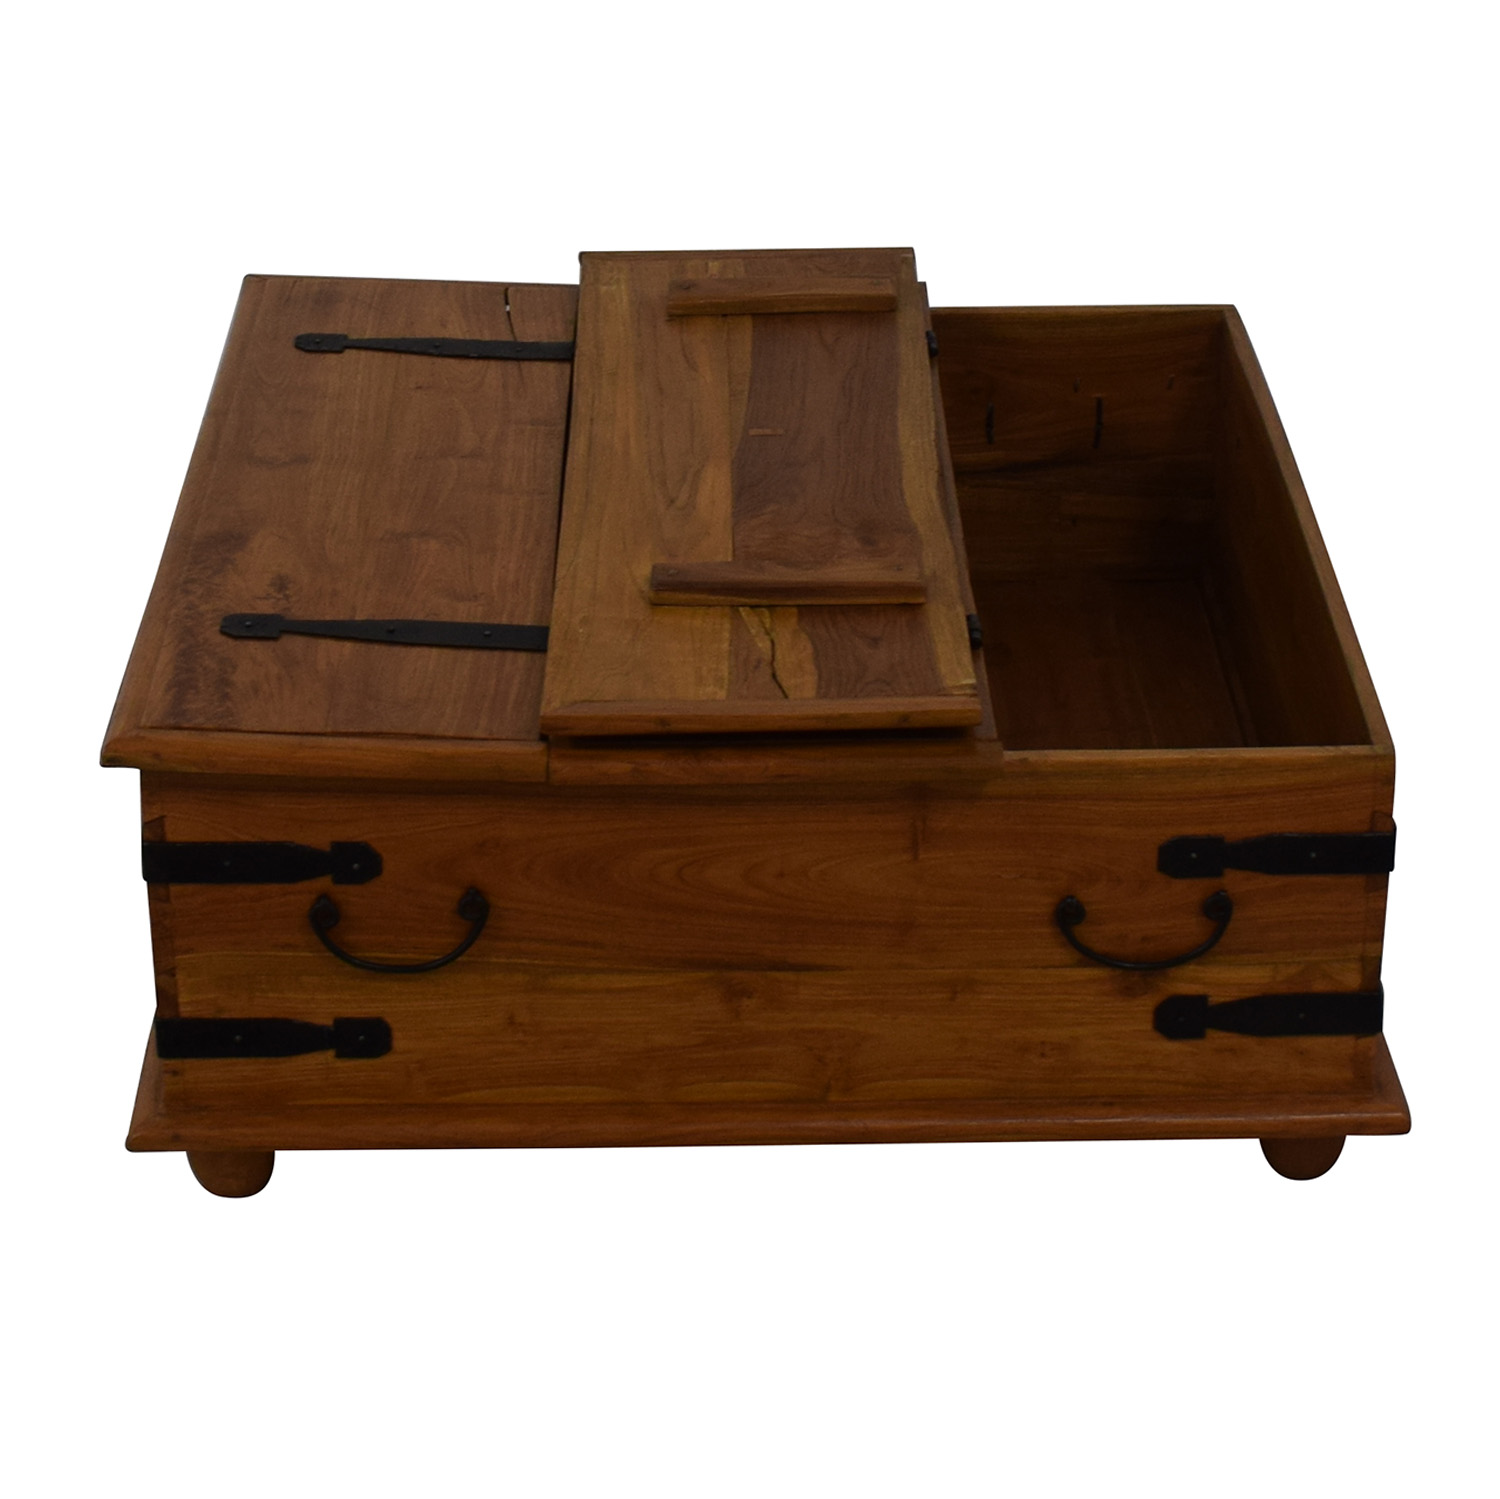 Macy's Storage Coffee Table / Tables